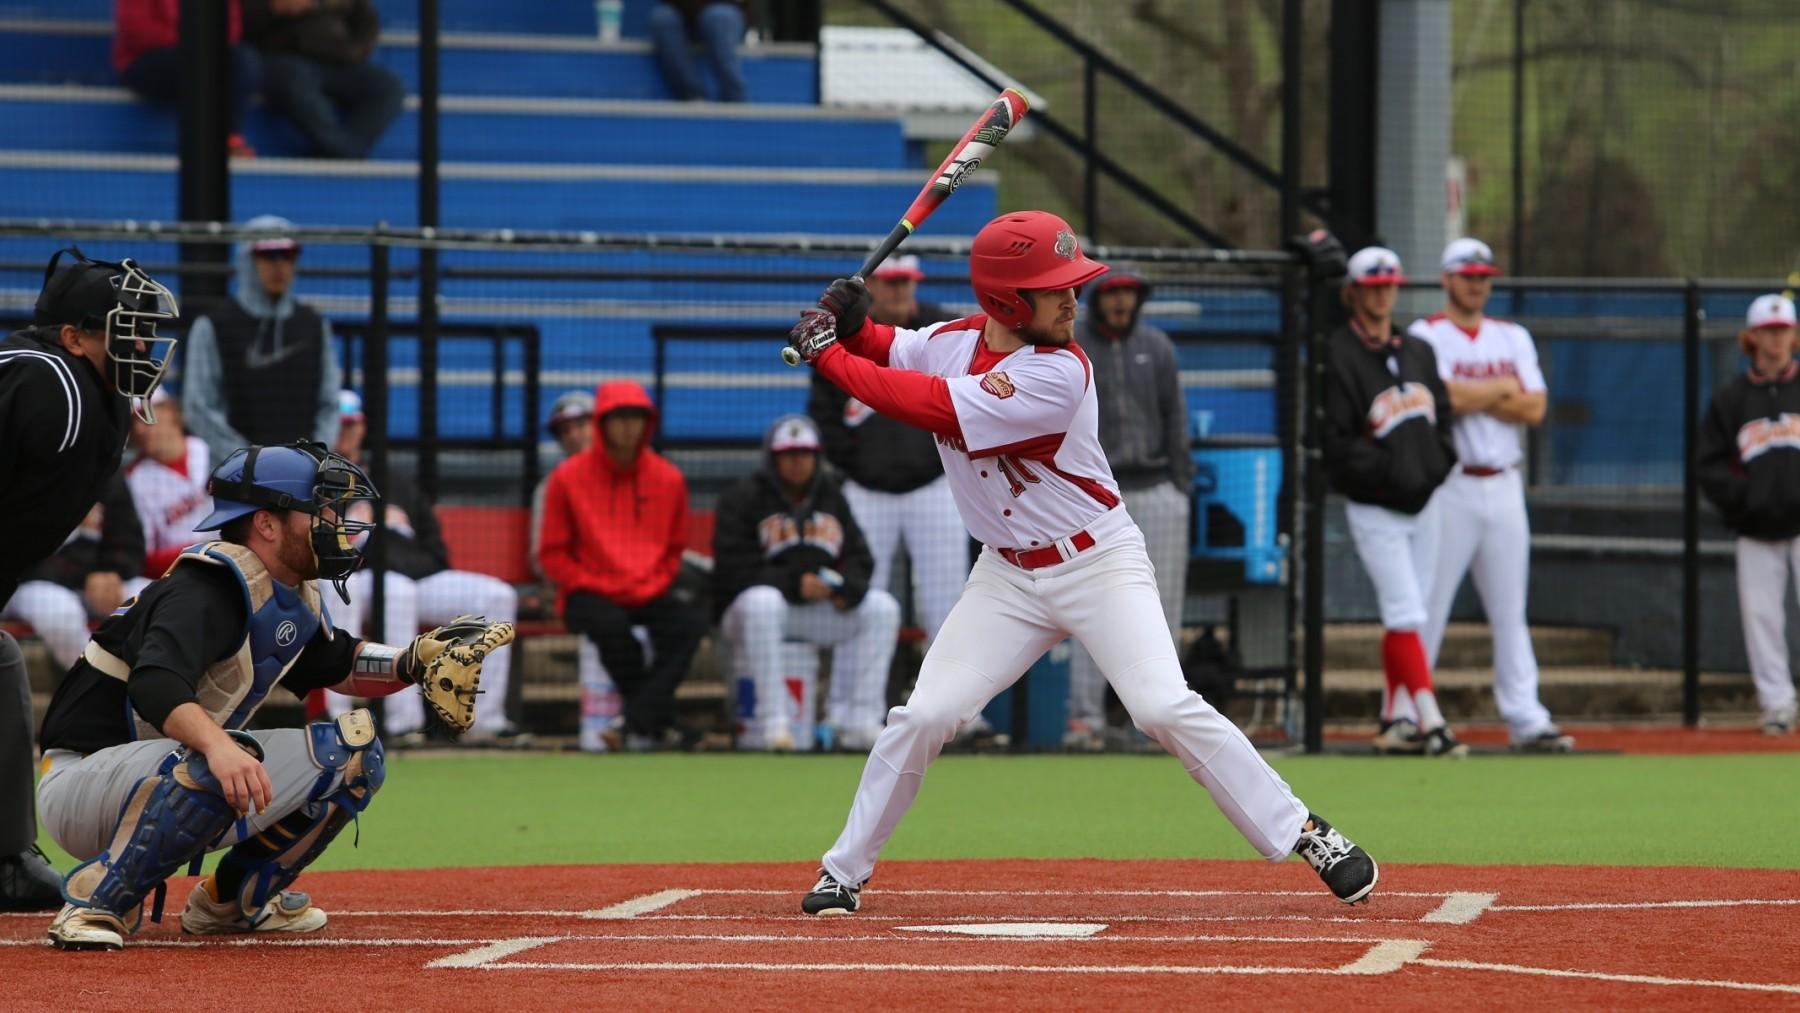 Derek Maciejeski hit his first collegiate home run Tuesday in a win over Texas A&M-International.